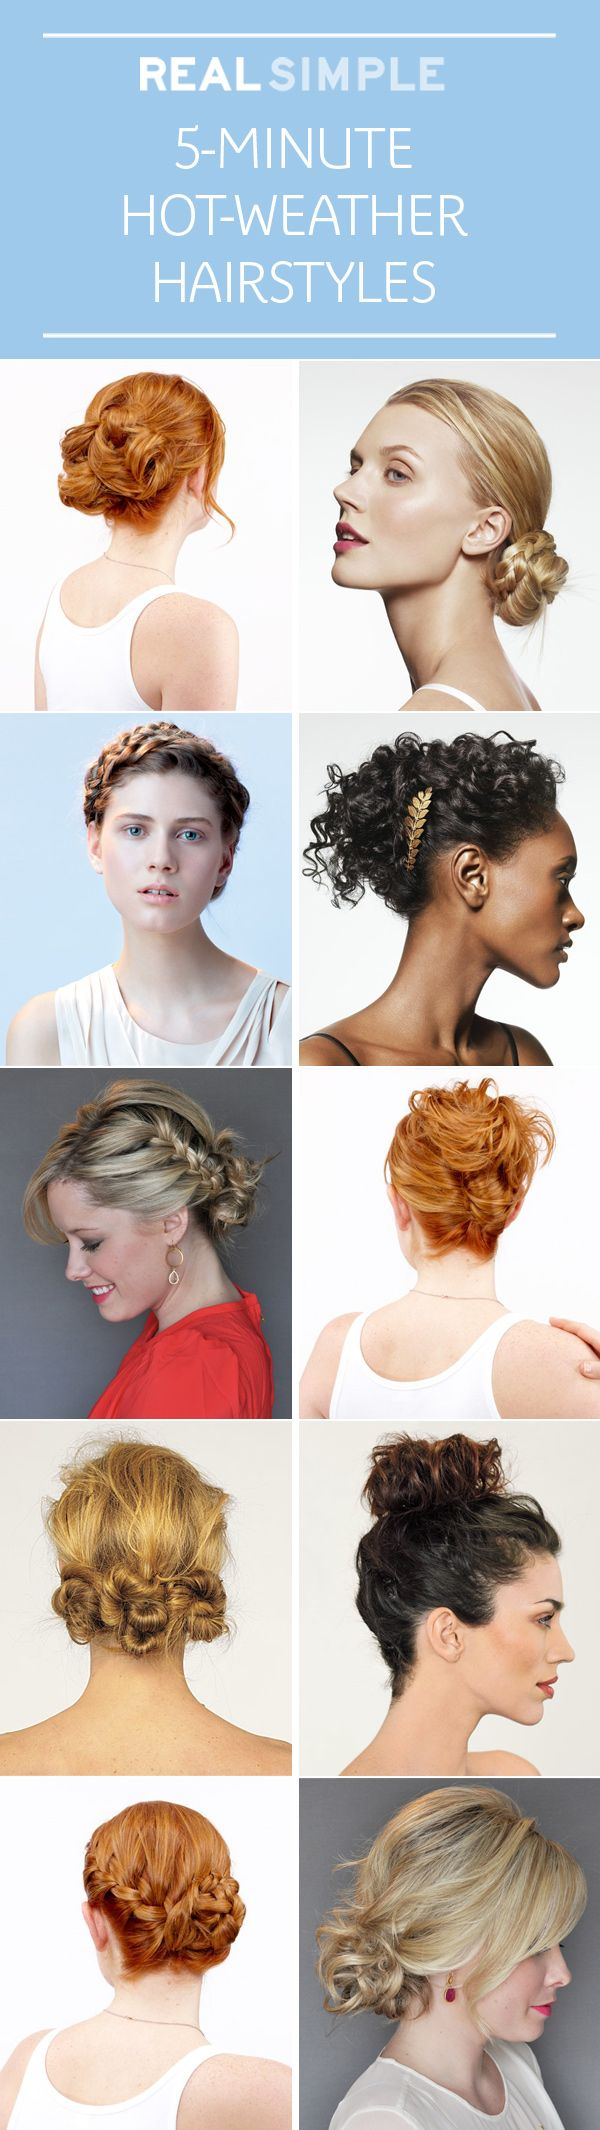 5 Minute Hot Weather Hairstyles Seriously Hair Updos